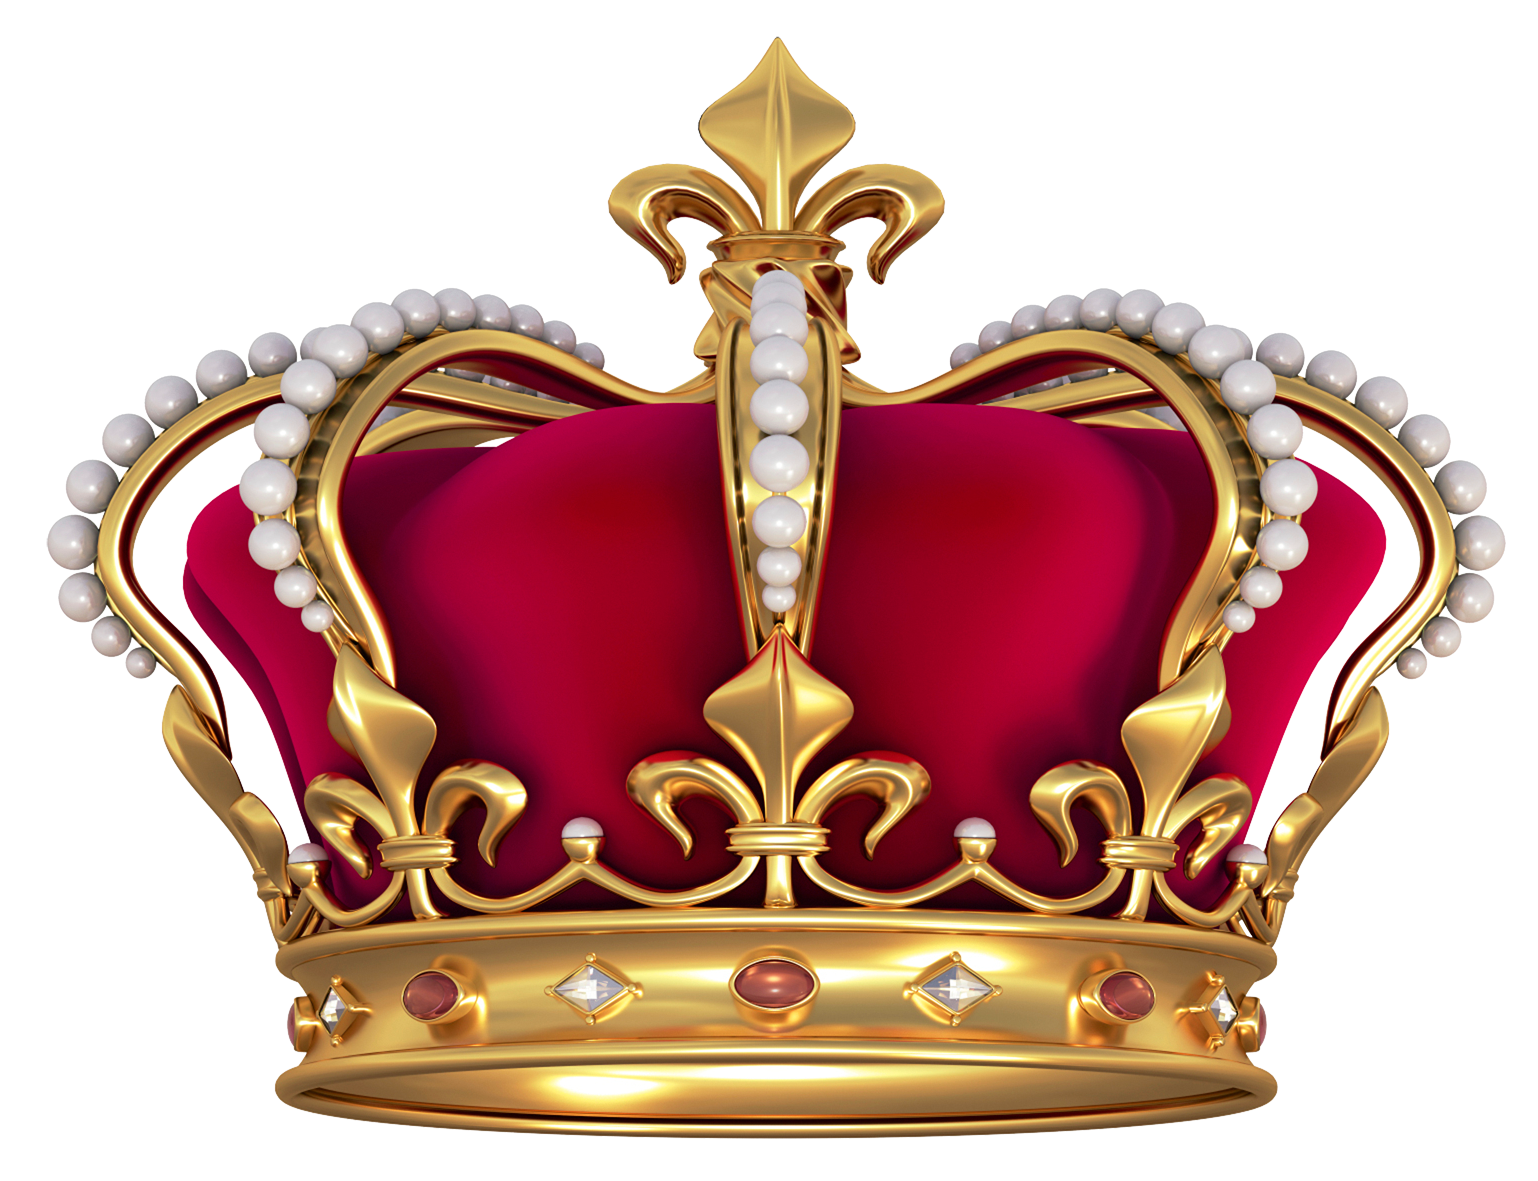 Crown bearers clipart red and black royalty free library Red Gold Crown with Pearls PNG Clipart Picture | Crafting - Regal ... royalty free library